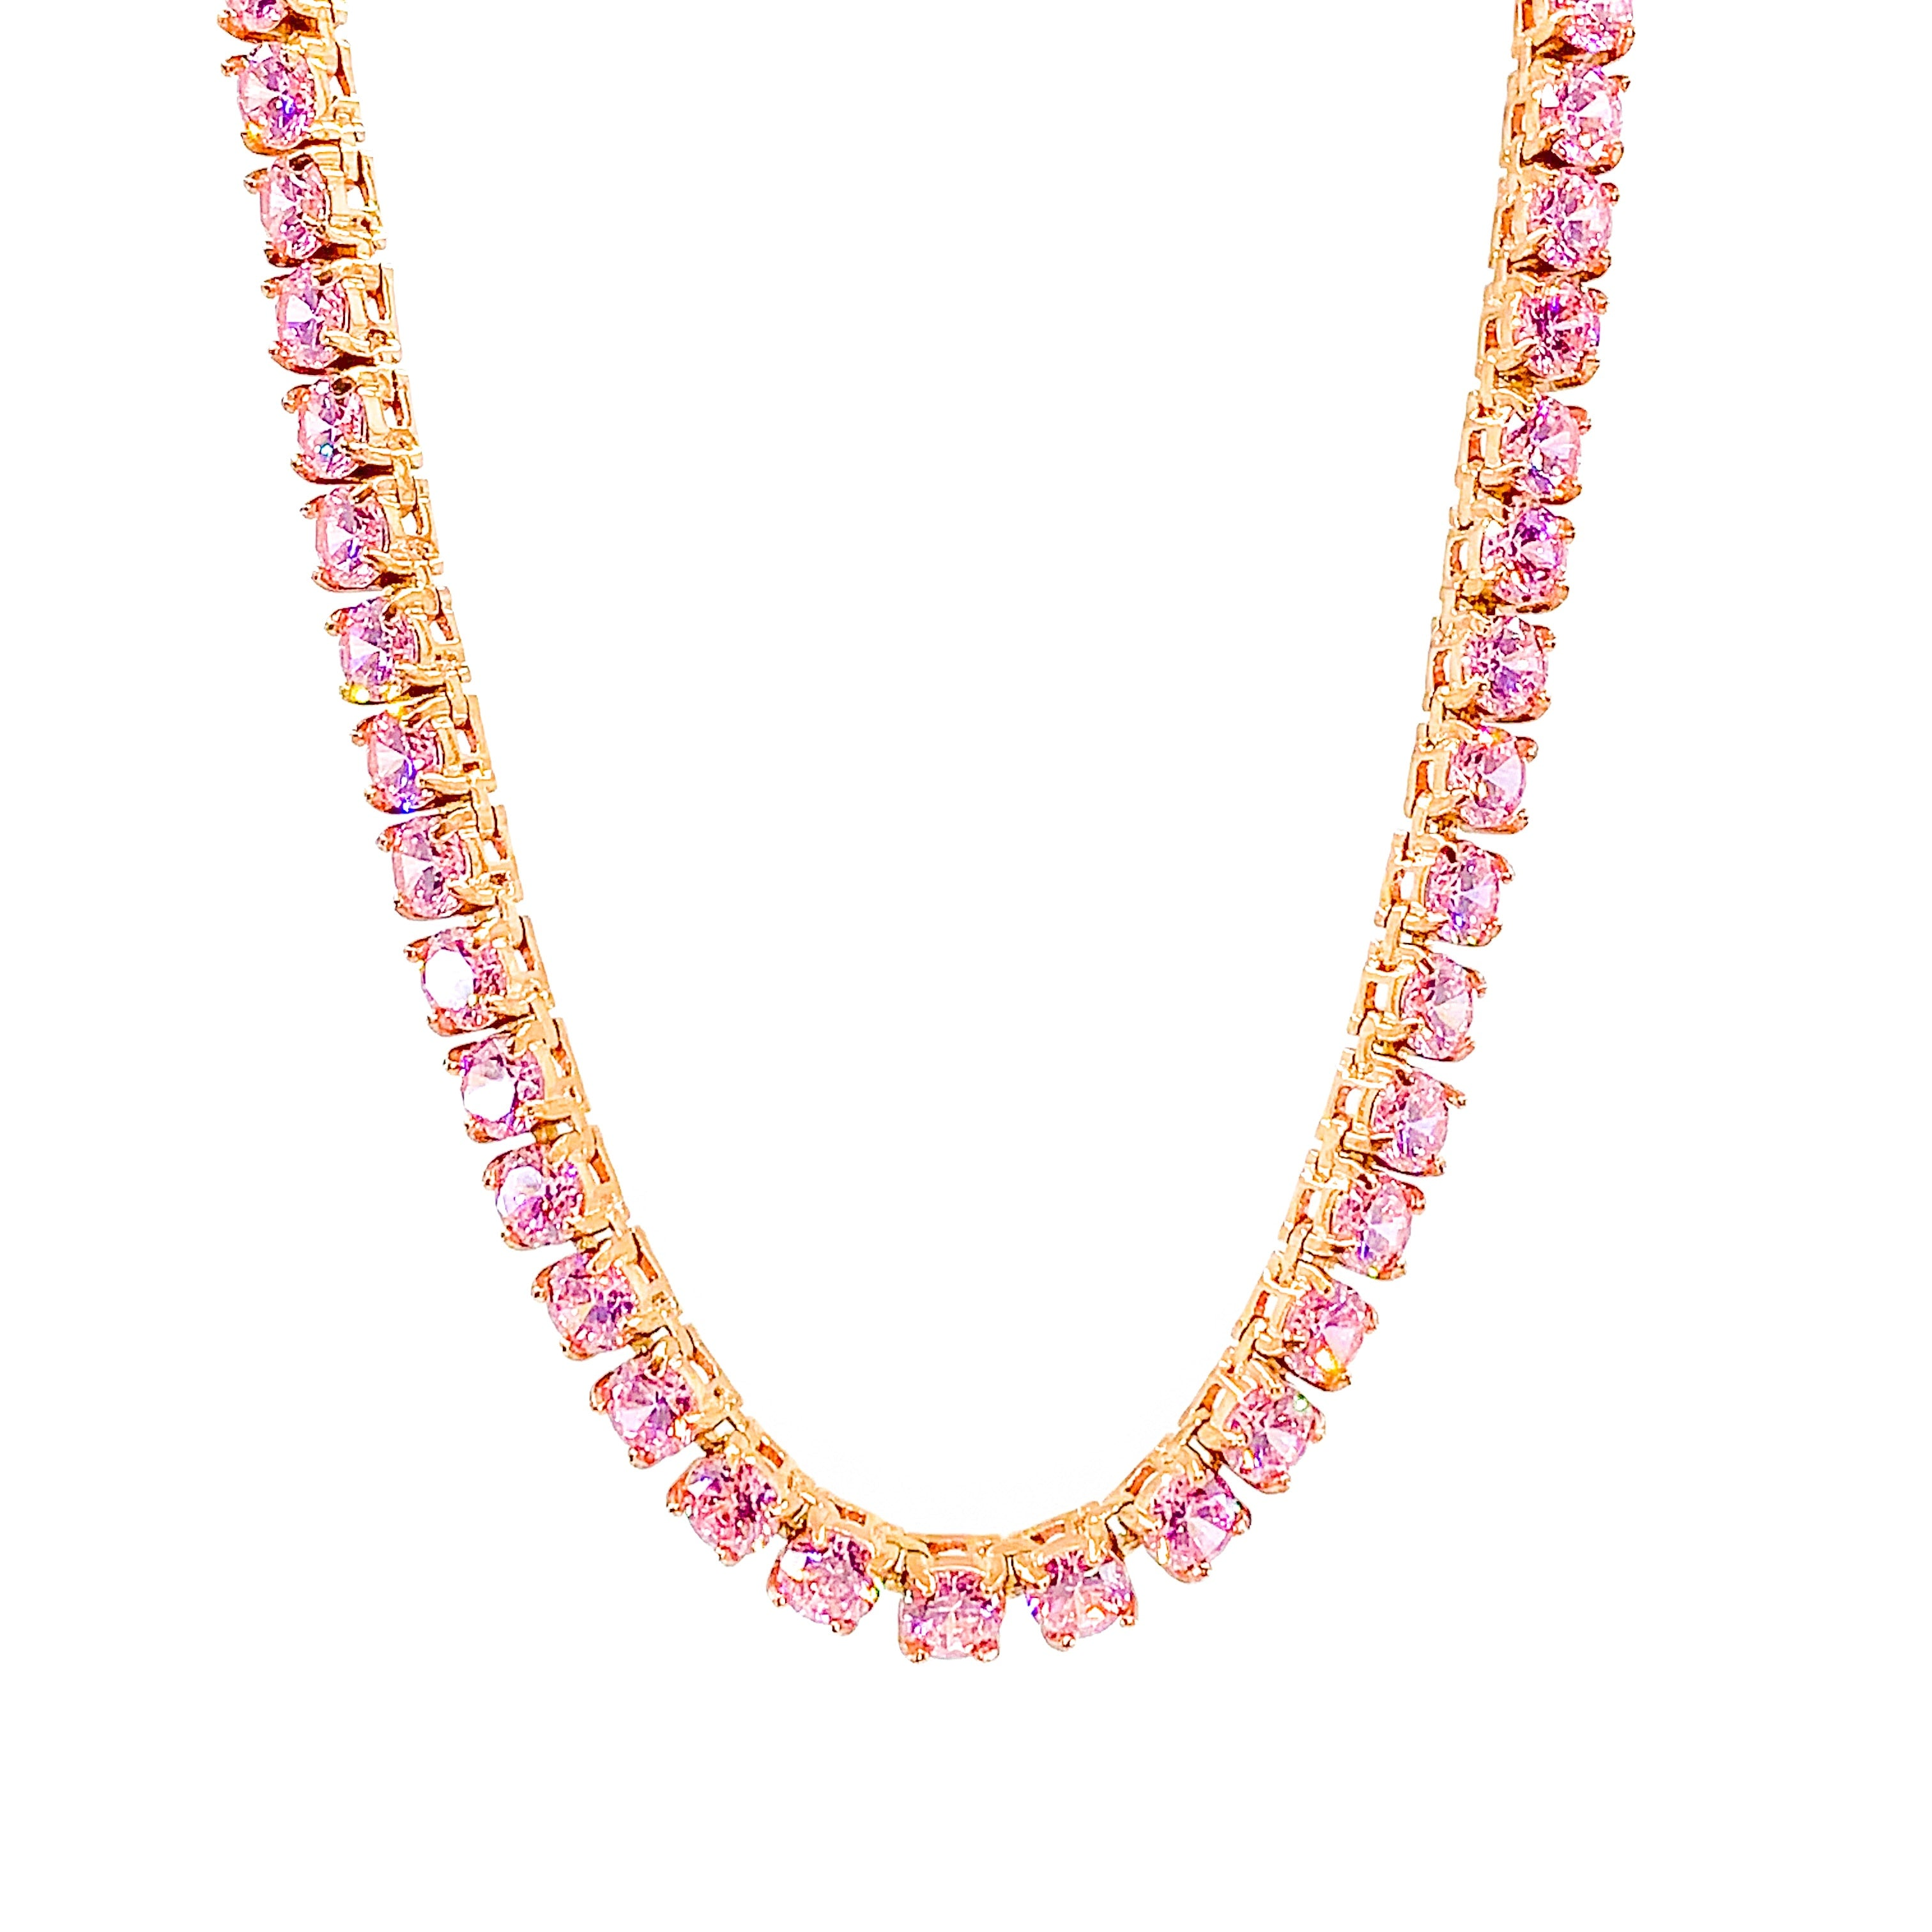 TENNIS CHAIN 5MM ROUND CUT - ROSE GOLD